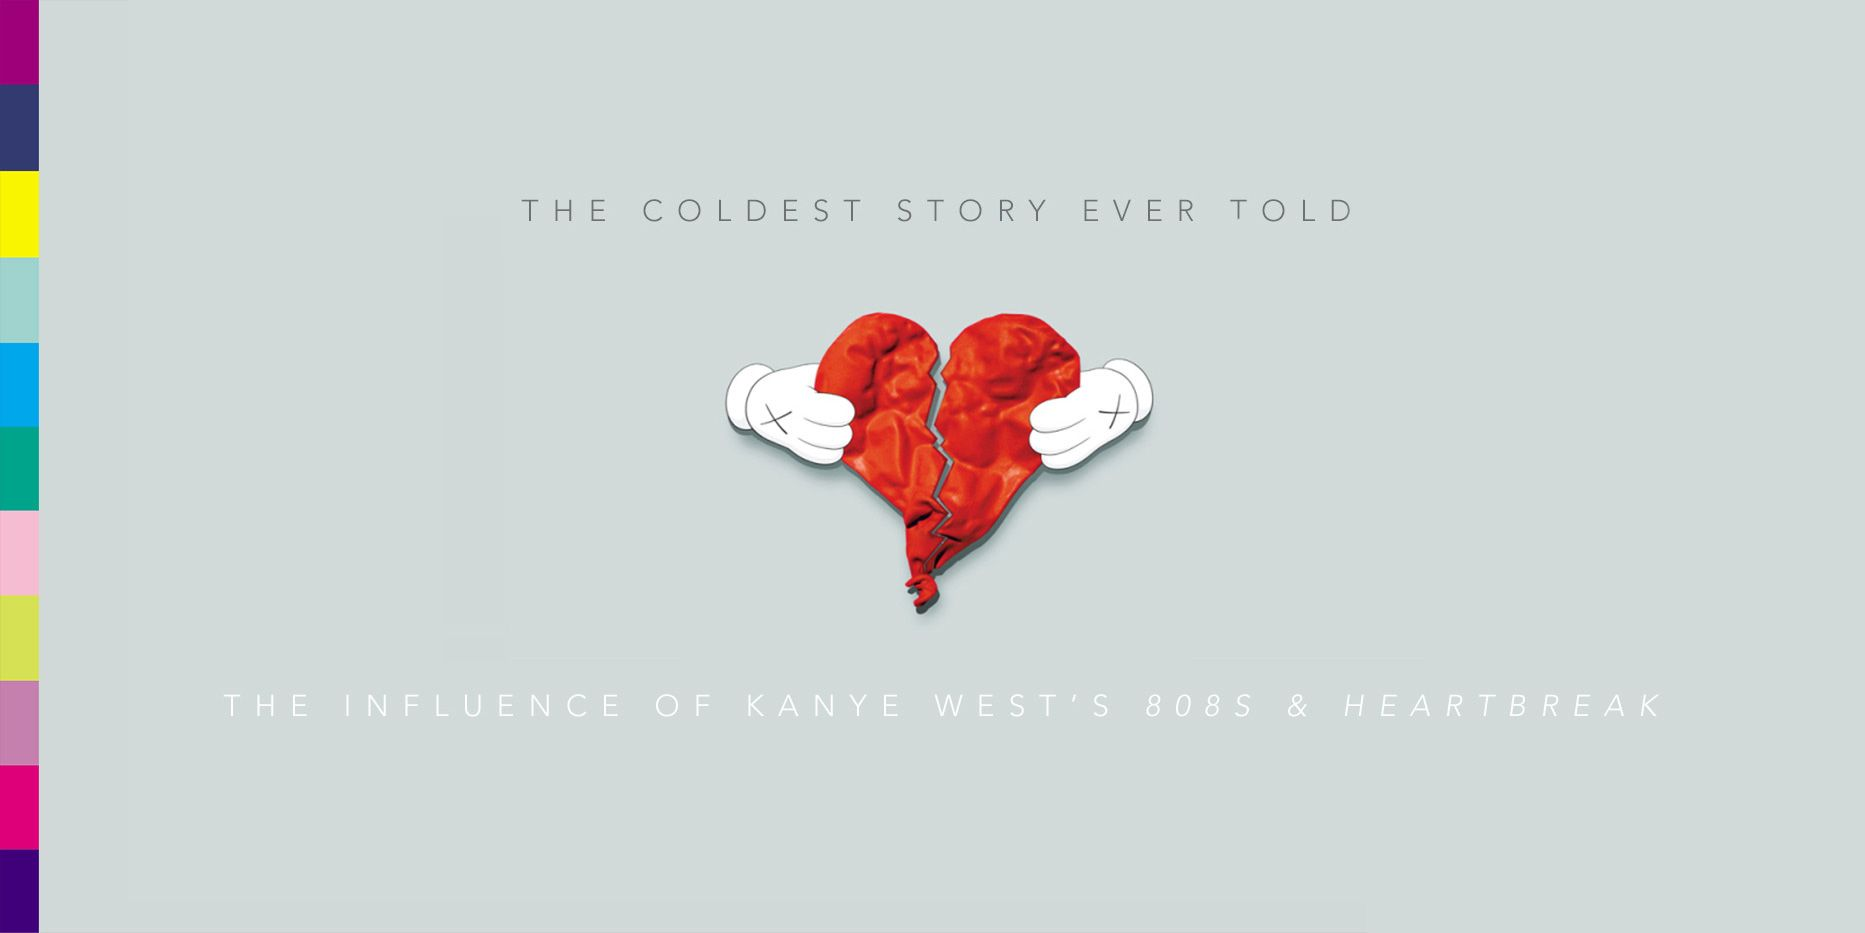 The Coldest Story Ever Told The Influence Of Kanye West S 808s Heartbreak 808s Heartbreak Kanye West Heartbreak